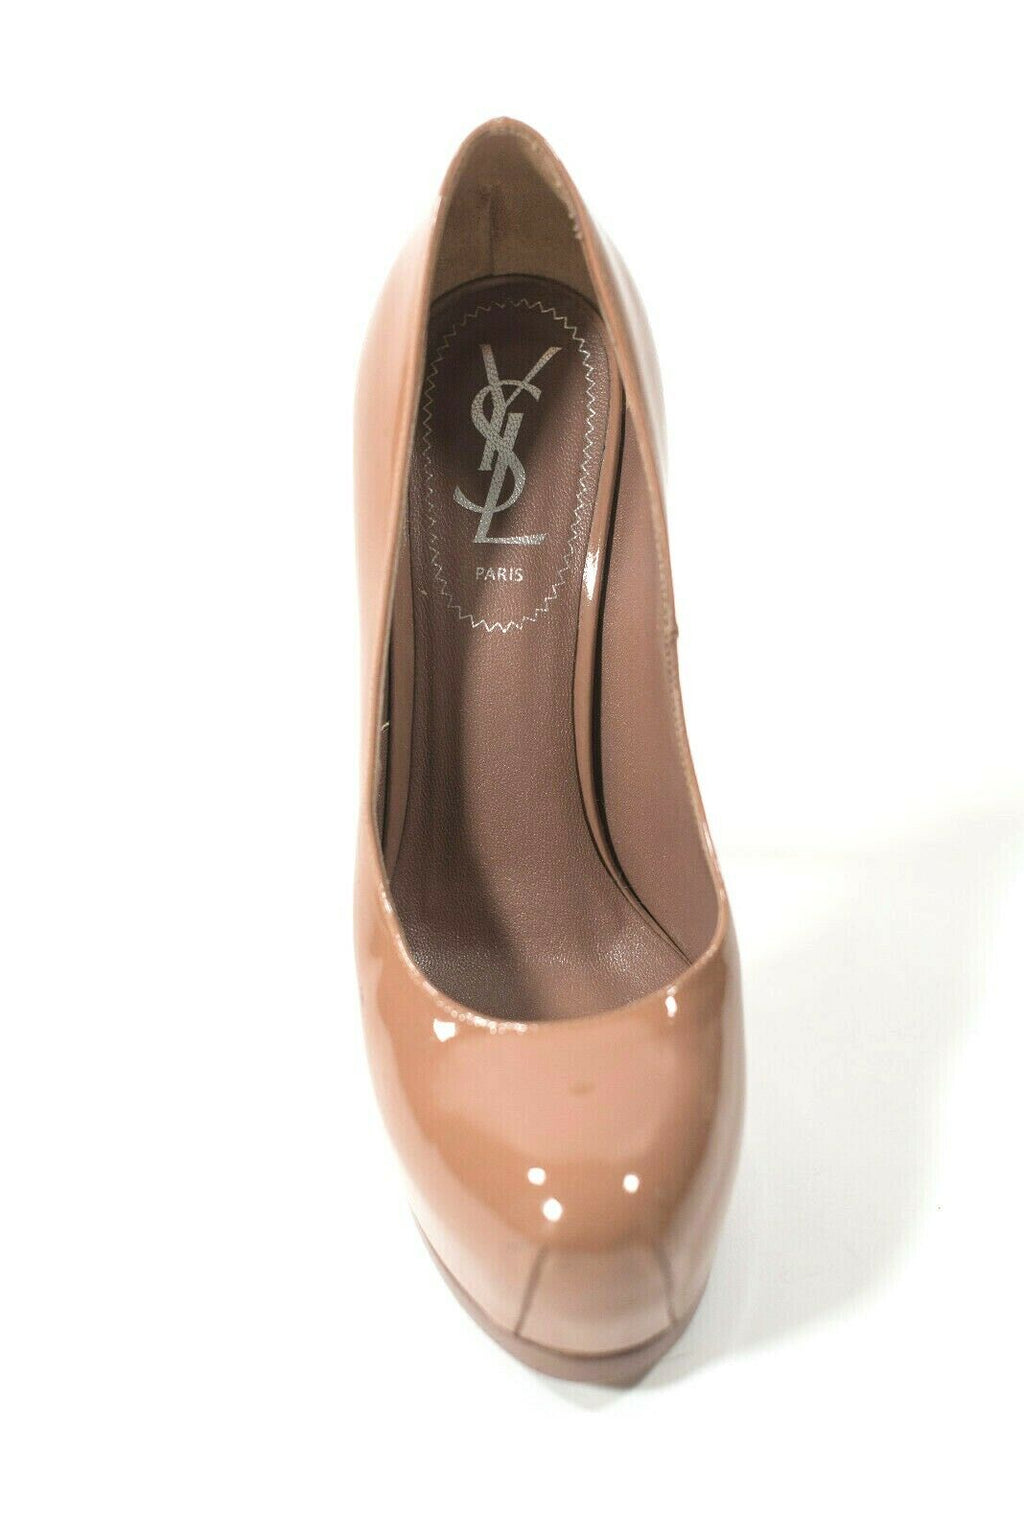 Yves Saint Laurent Womens 36.5 Beige Pumps Patent Leather YSL Tribtoo Stiletto